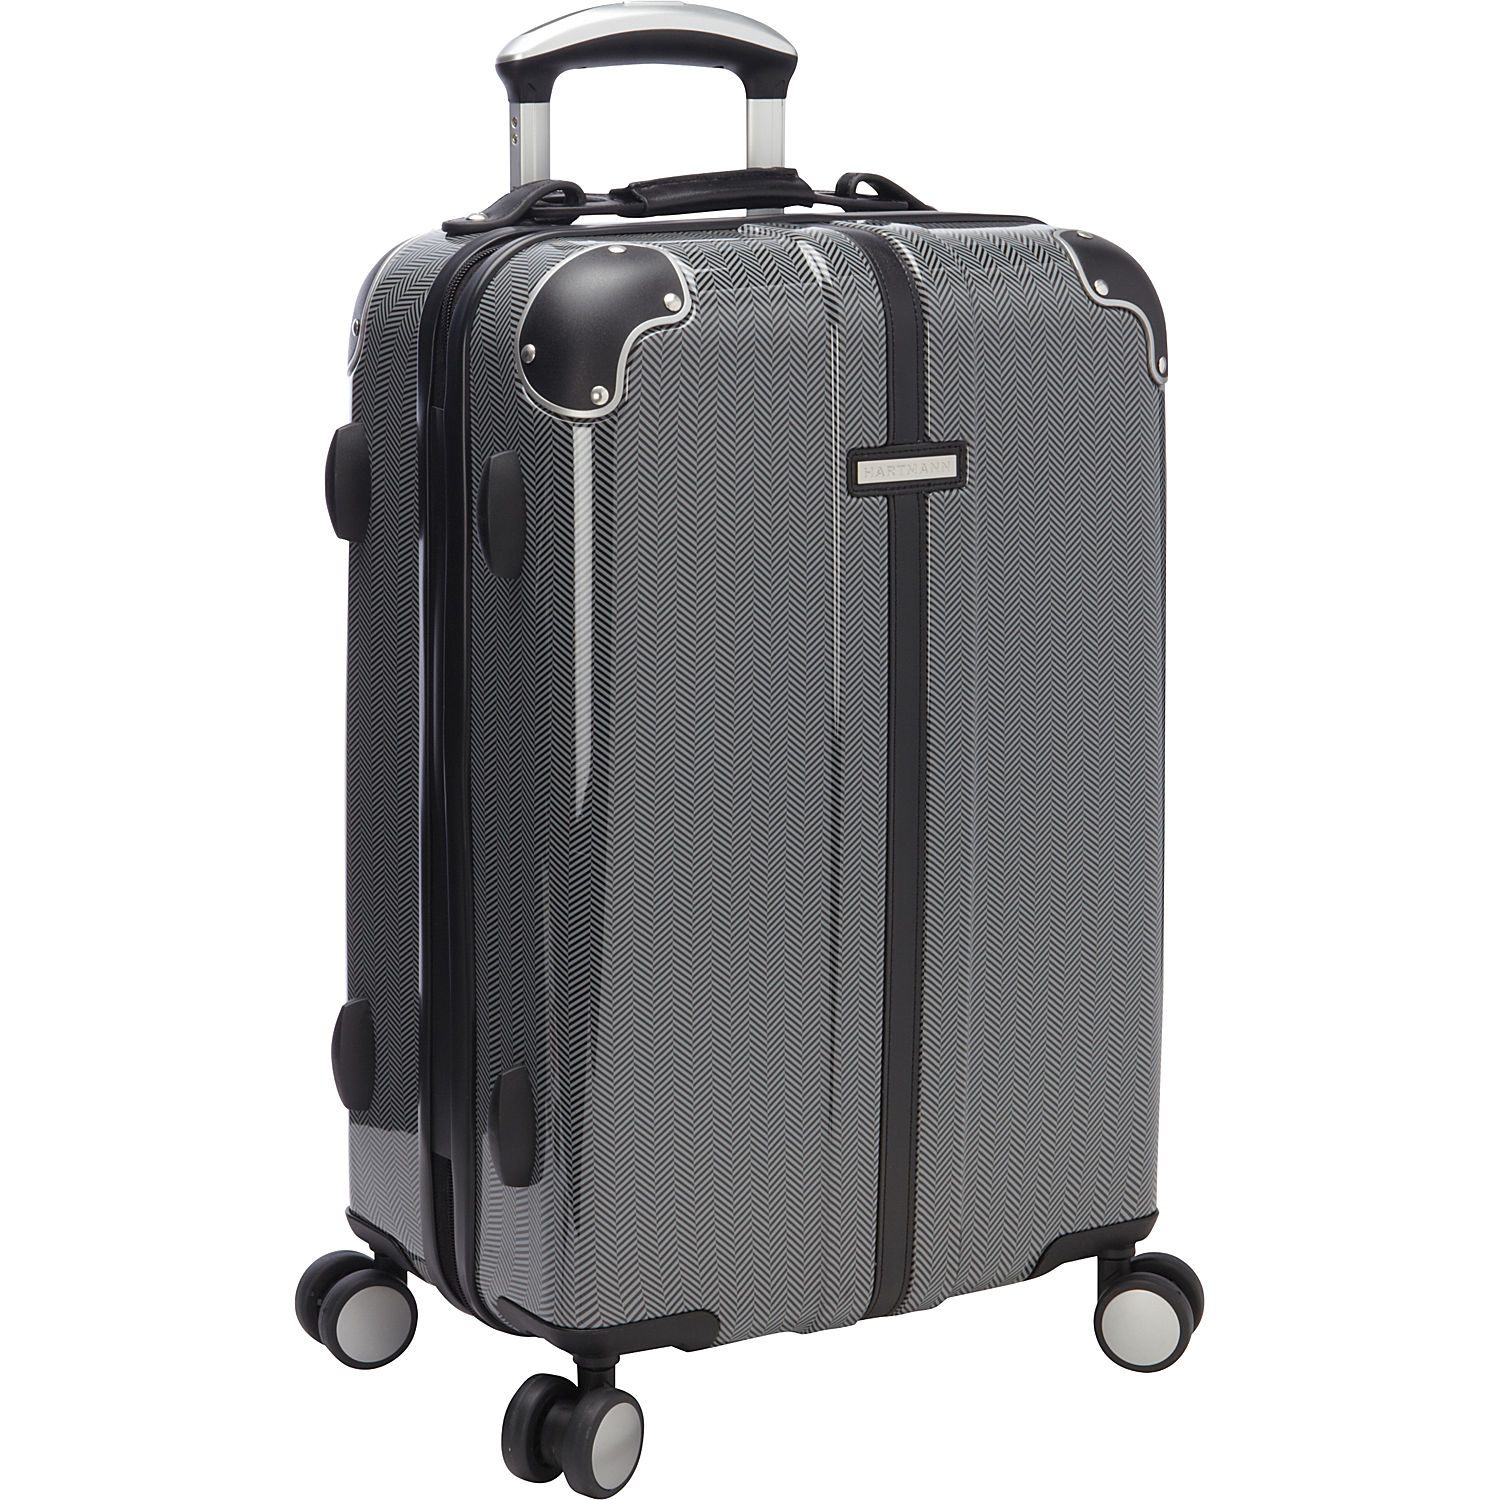 Hartmann Luggage Herringbone Hs Spinner 21 Ebags Com